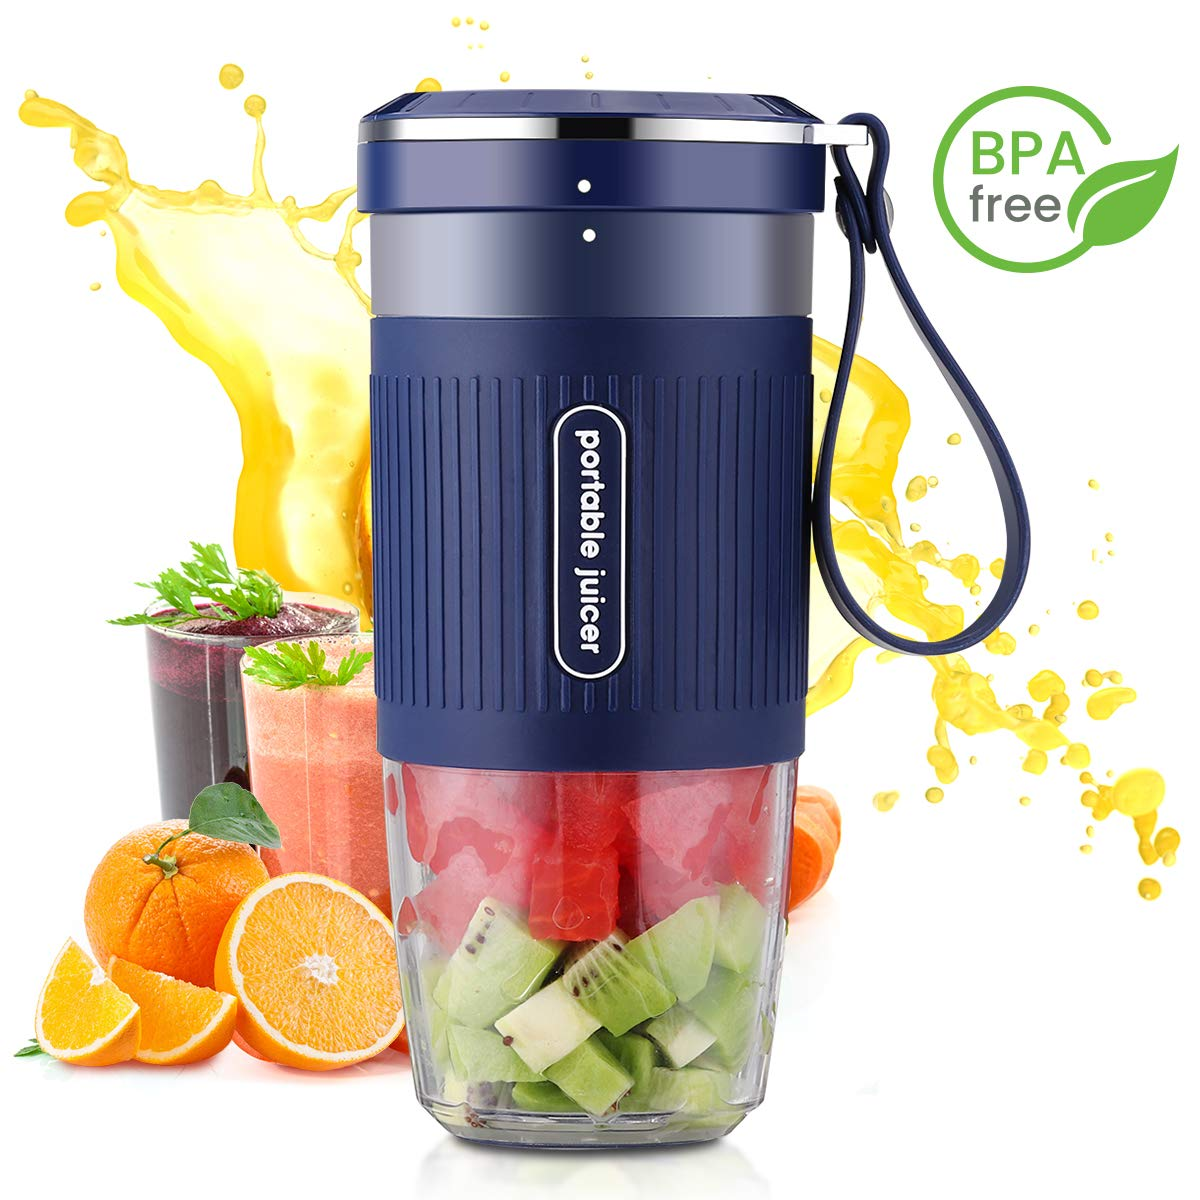 Portable Blender Mini Personal Blender, Godmorn Juicer Smoothie Blender Smoothie Maker Cordless Small Juicer Cup Mixer, USB Rechargeable BPA Free,10oz 300ml, Home Outdoor Travel Office, Blue